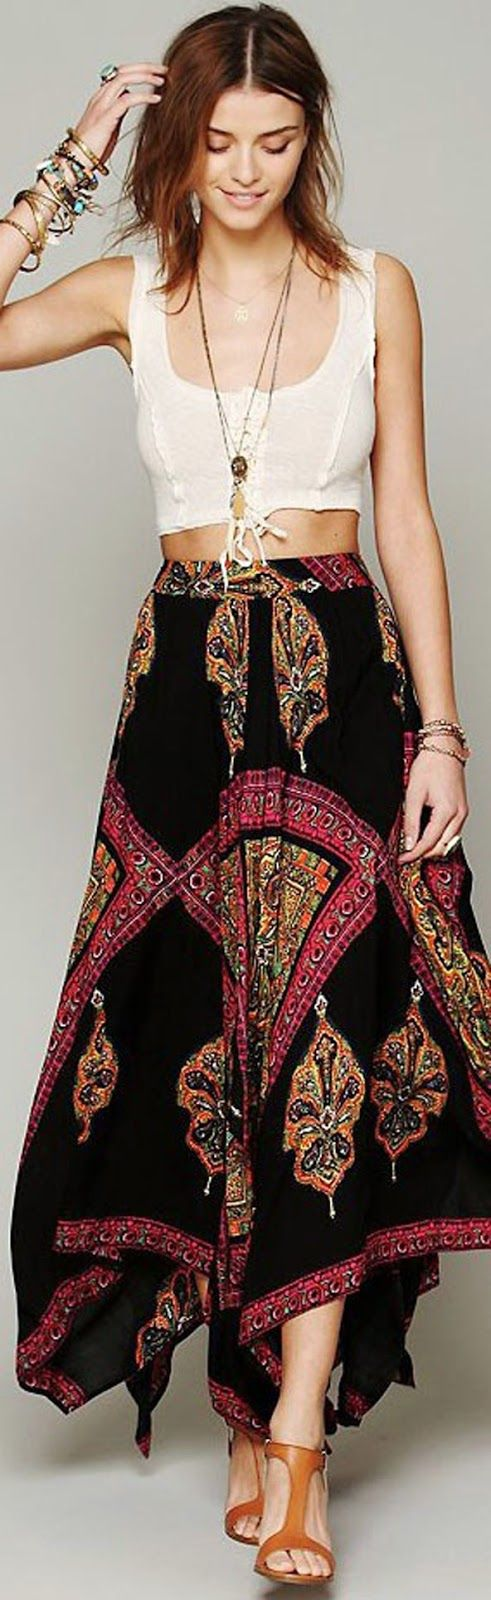 Free People Heart Of Gold Maxi Skirt